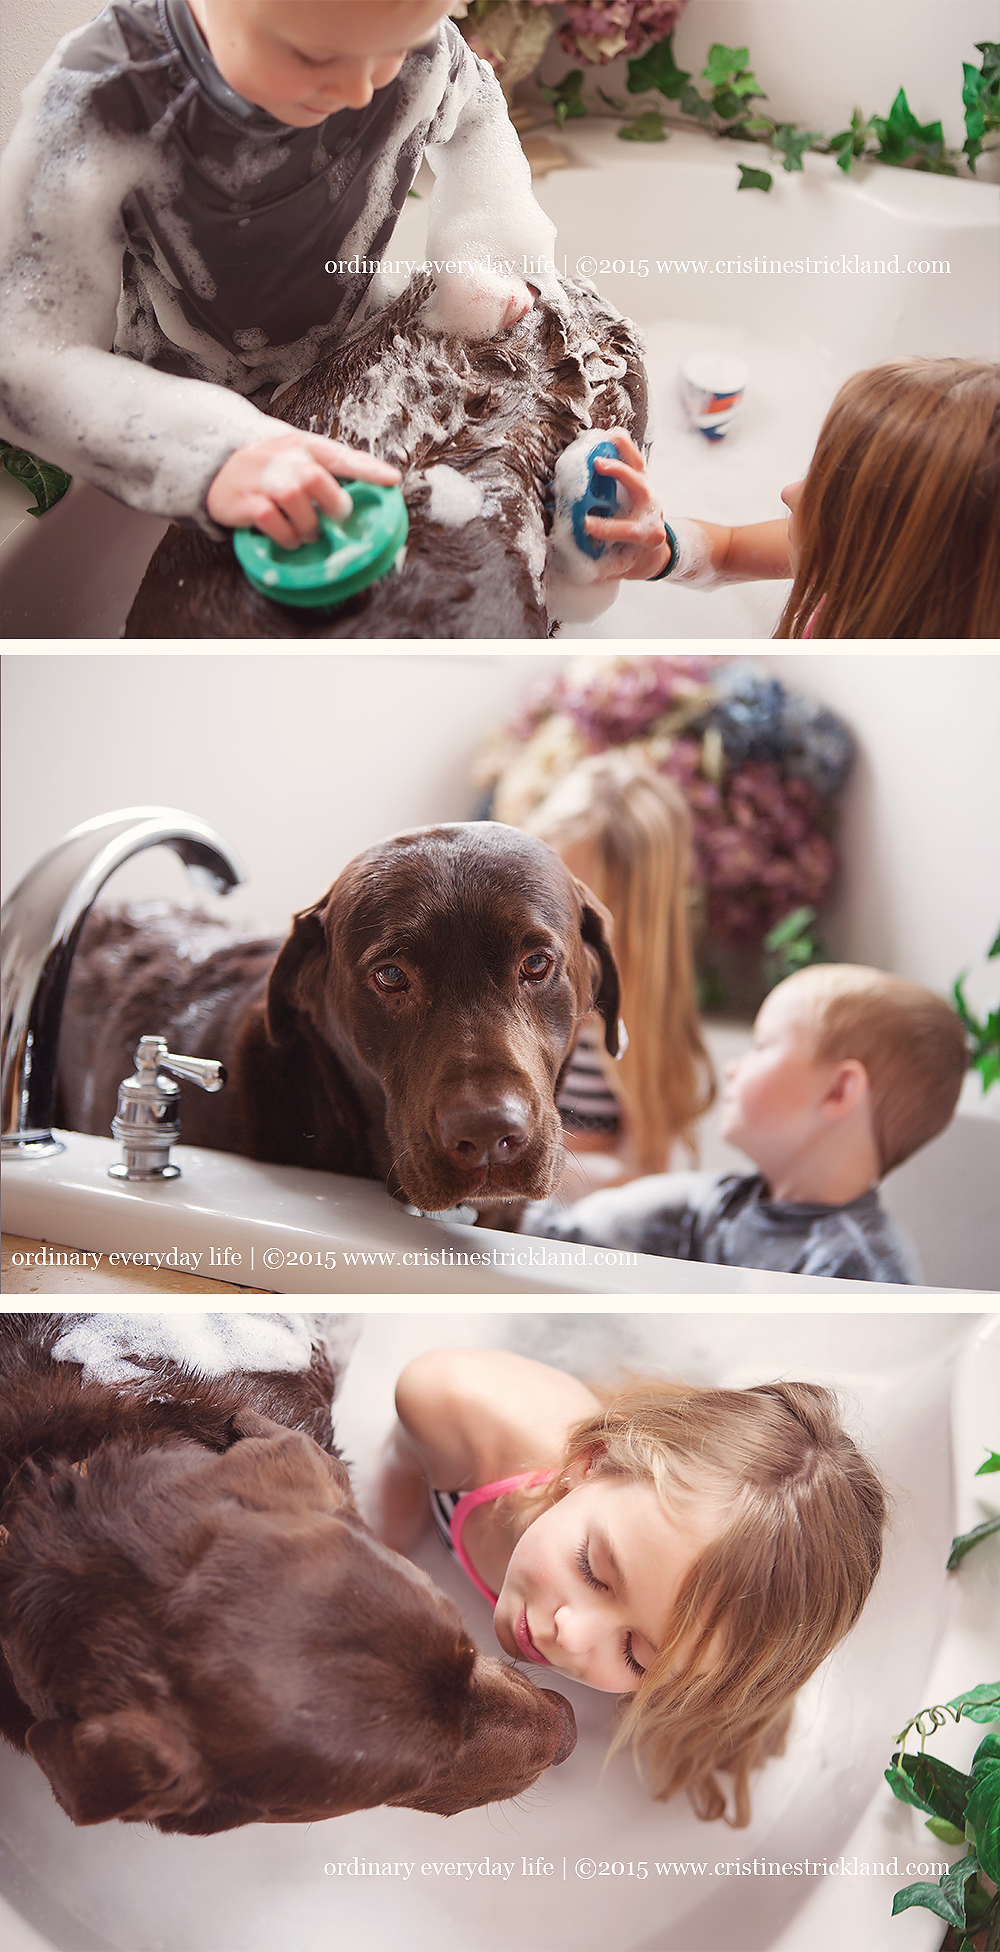 labrador gets a bath lifestyle dog photography